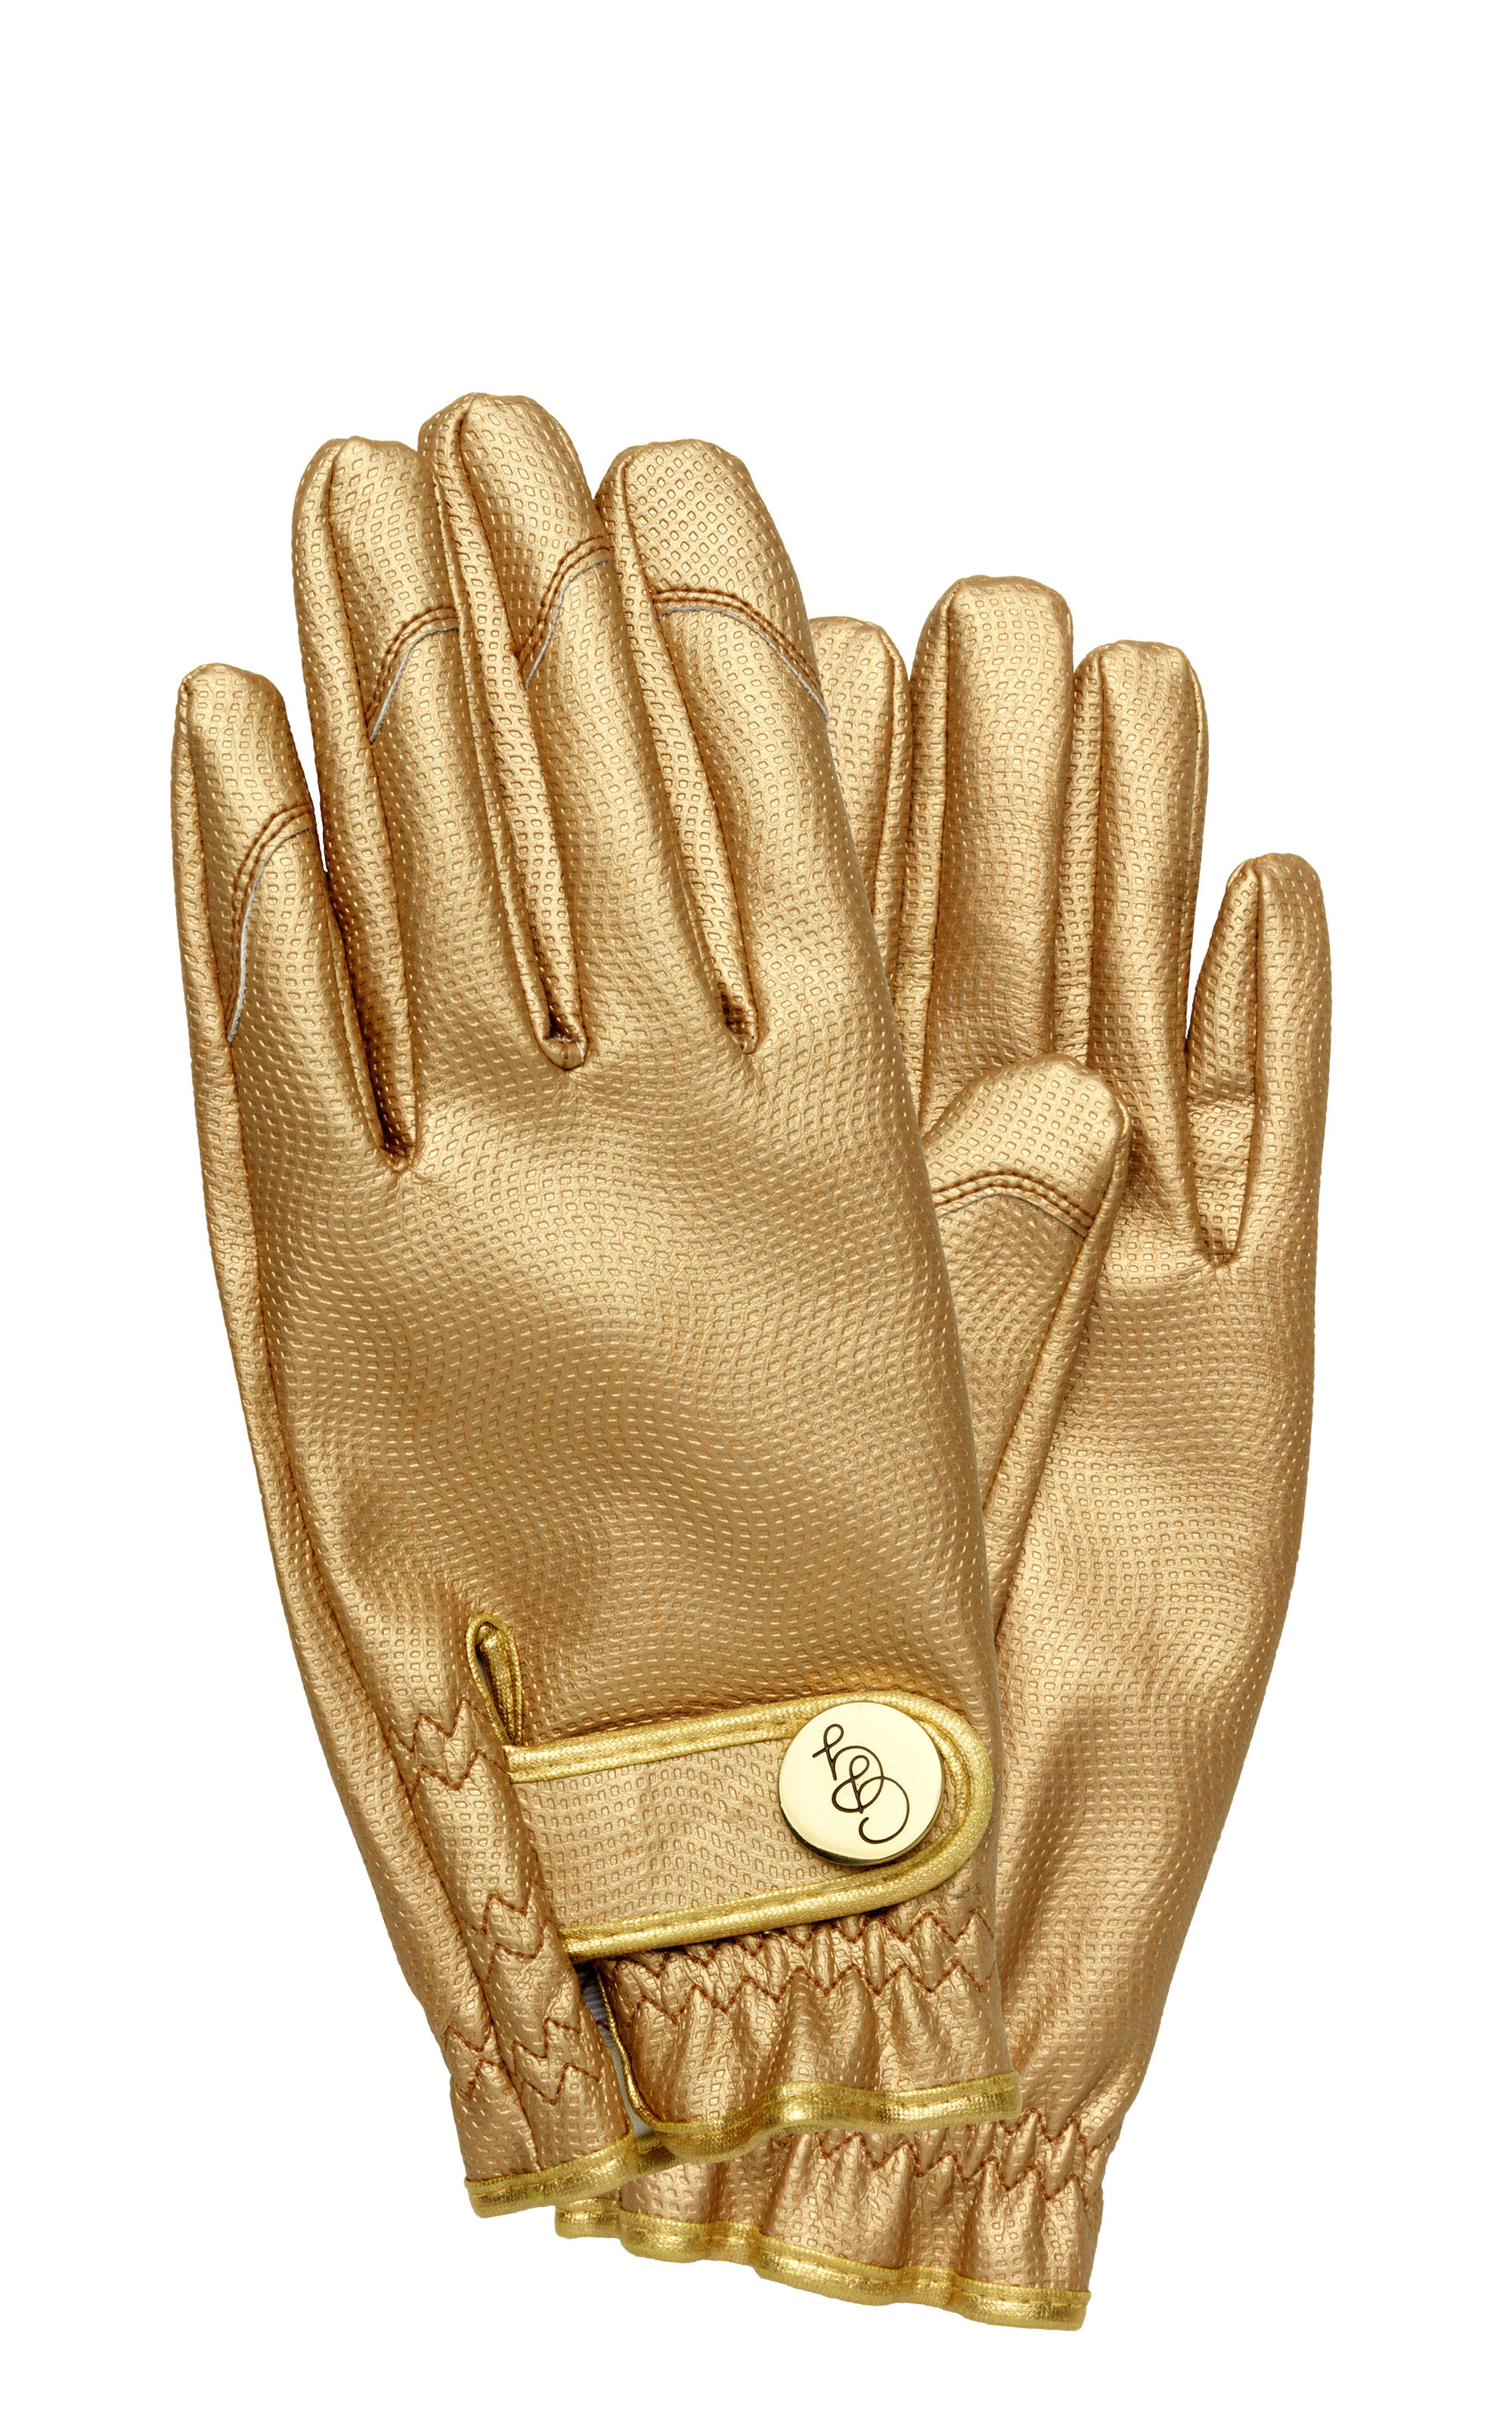 Outdoor - Pots & Plants - Garden gloves - / Small Size by Garden Glory - Gold - Brass, Polyurethane